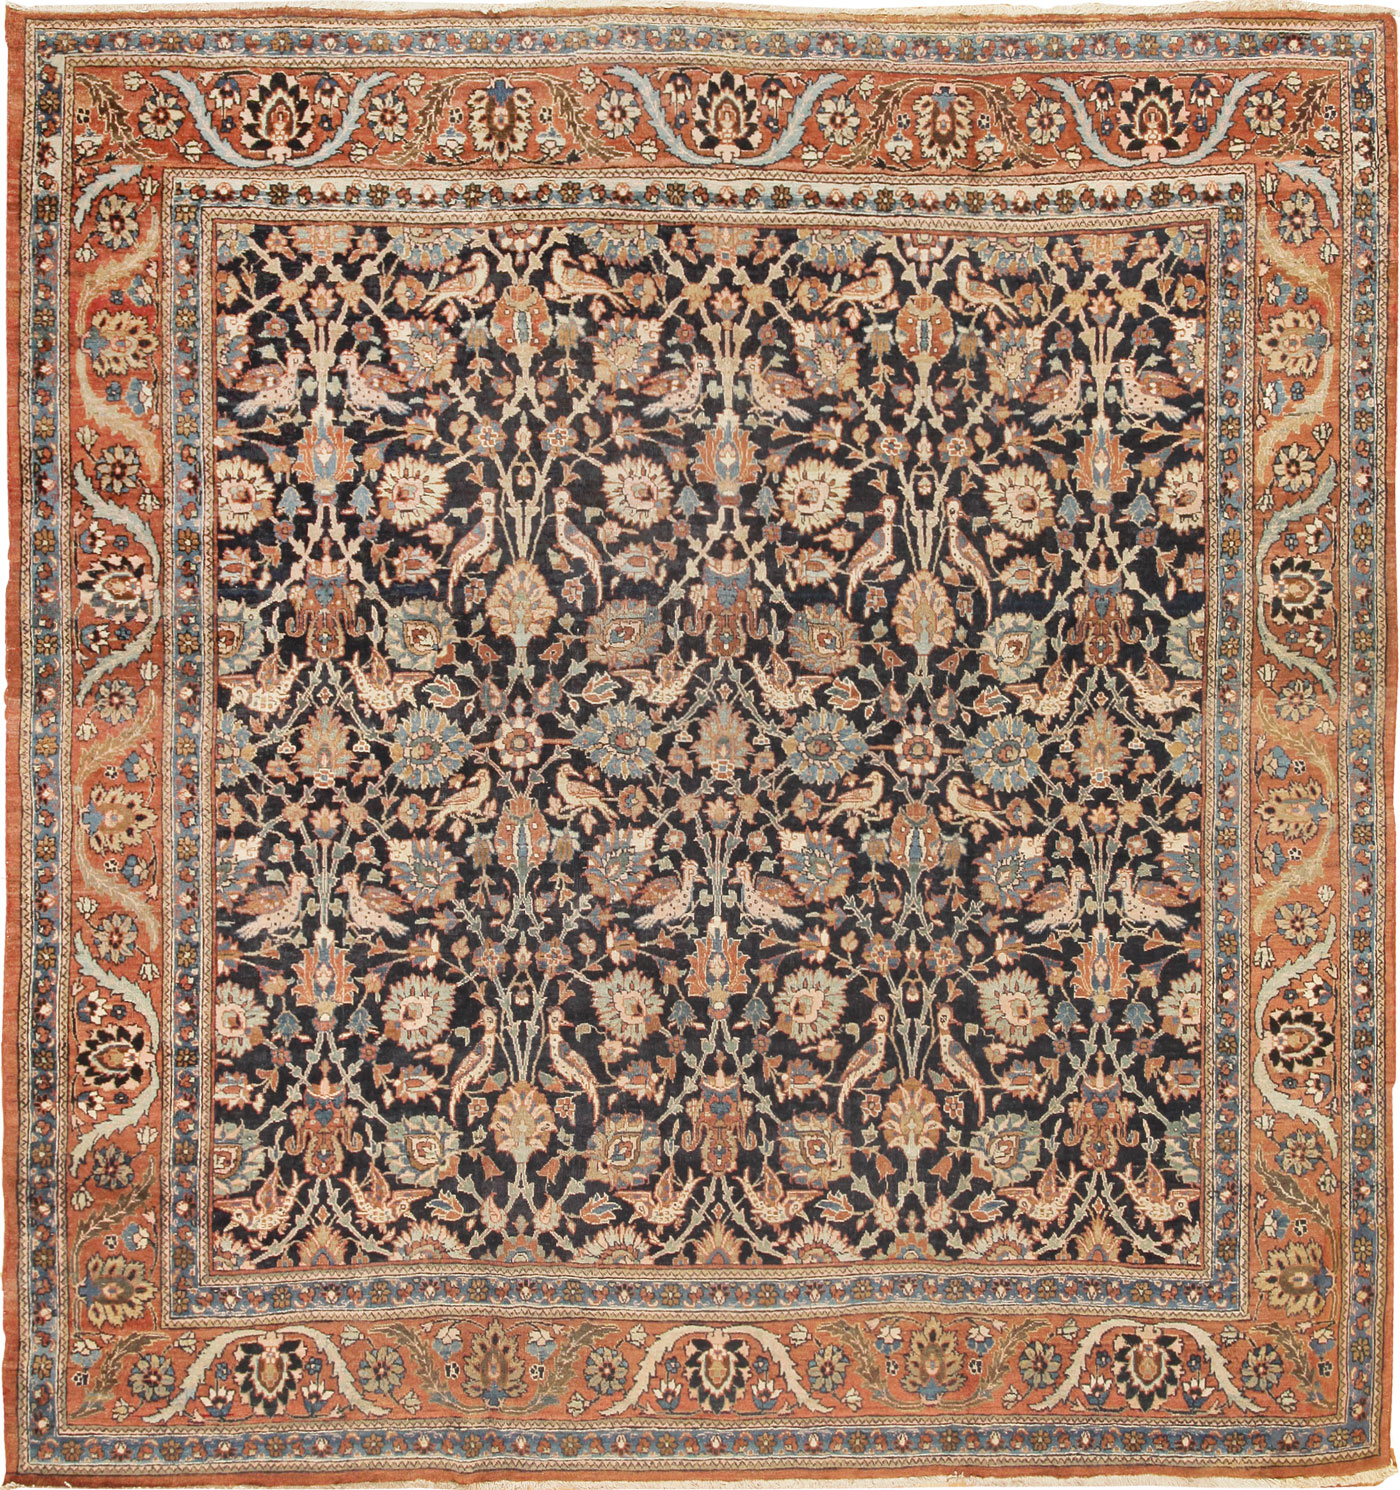 Persian Rugs For Sale: Antique Tabriz Persian Rug 42051 For Sale